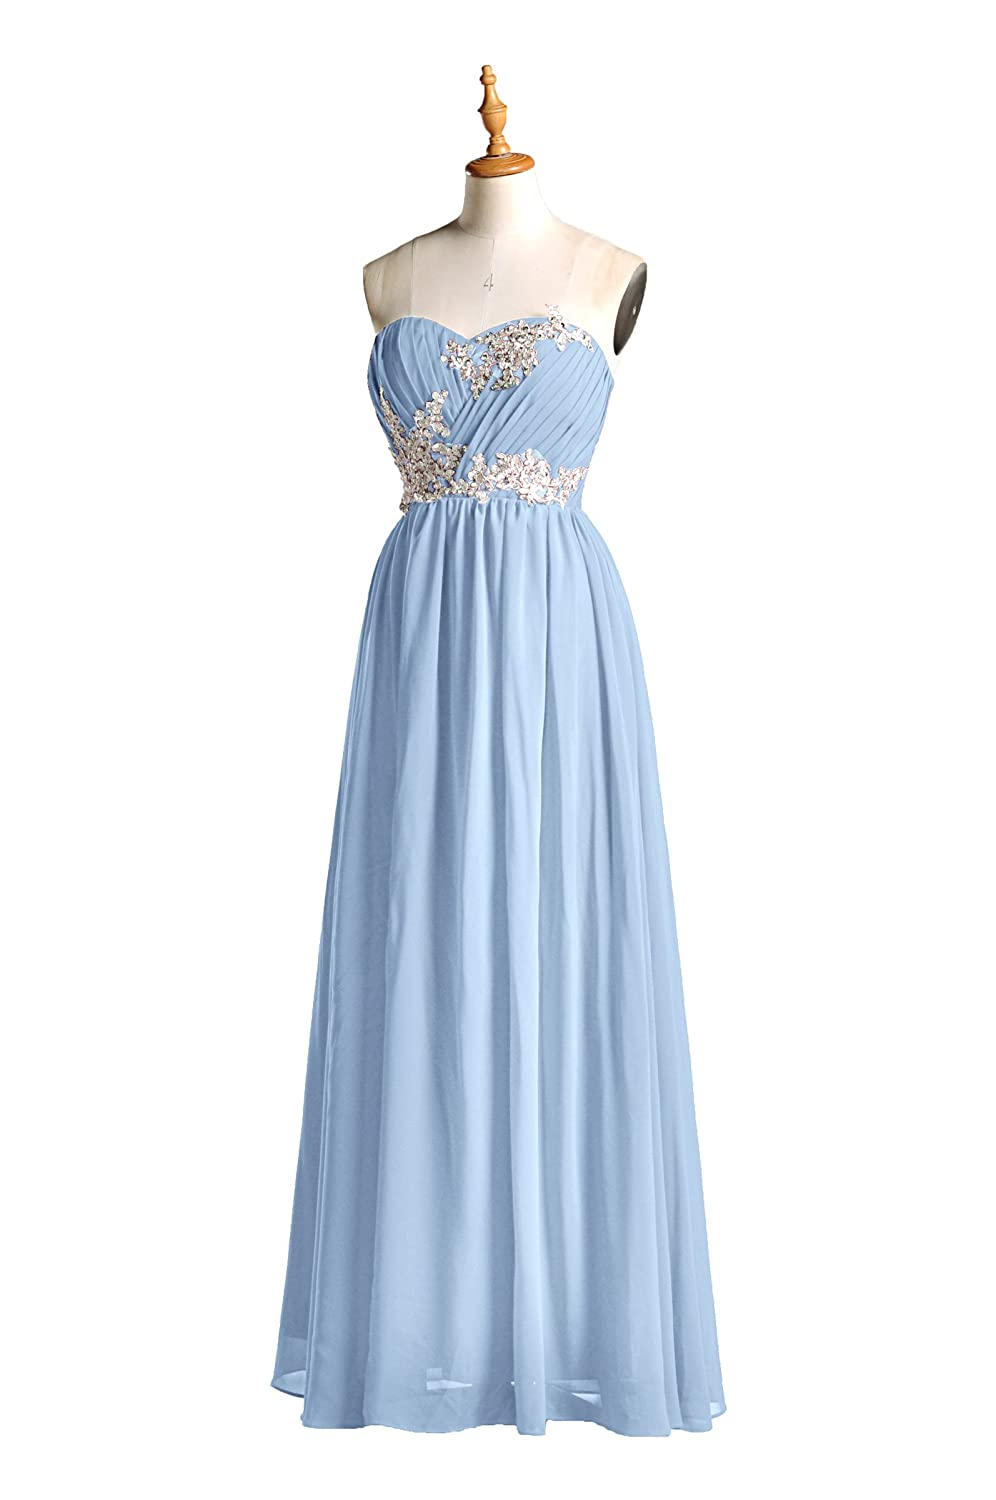 Bridesmaid Dress Long Special Occasion Gown Formal Dresses For Women Lace Prom Dresses, Color Cornflower Blue, 12 at Amazon Womens Clothing store: